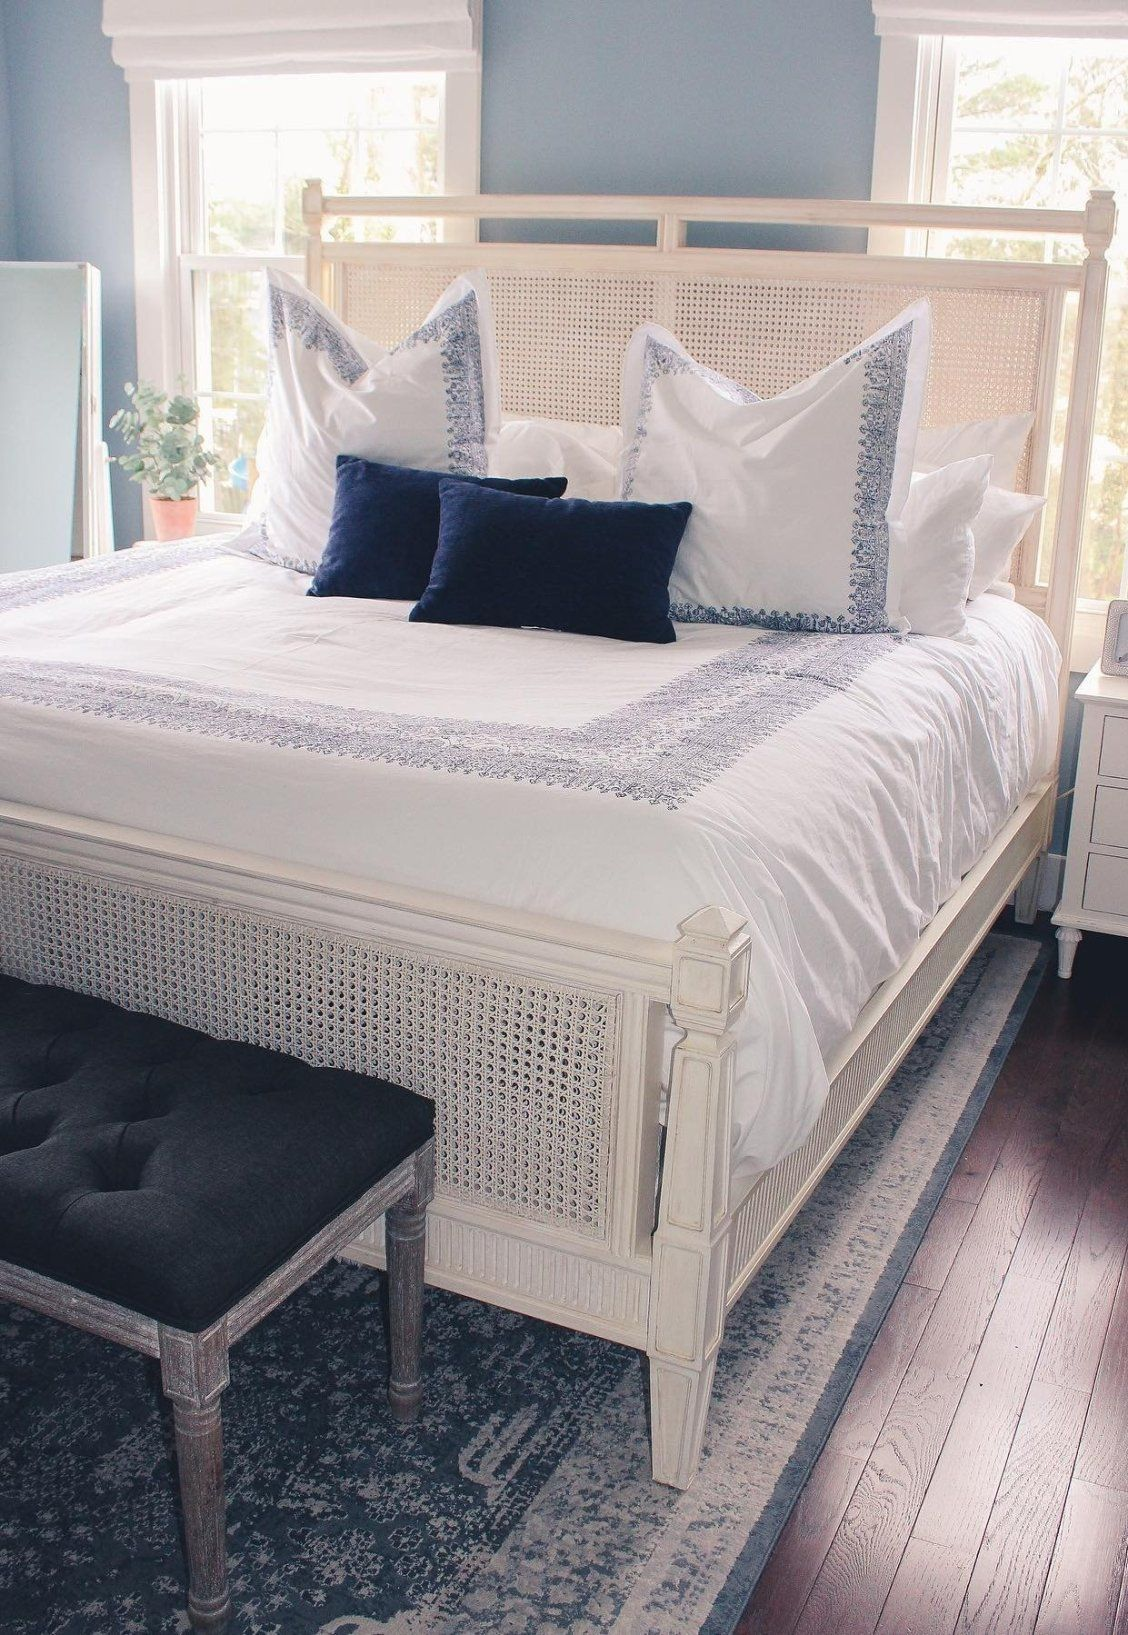 Marion French Cane Bed Frontgate in 2020 White rattan